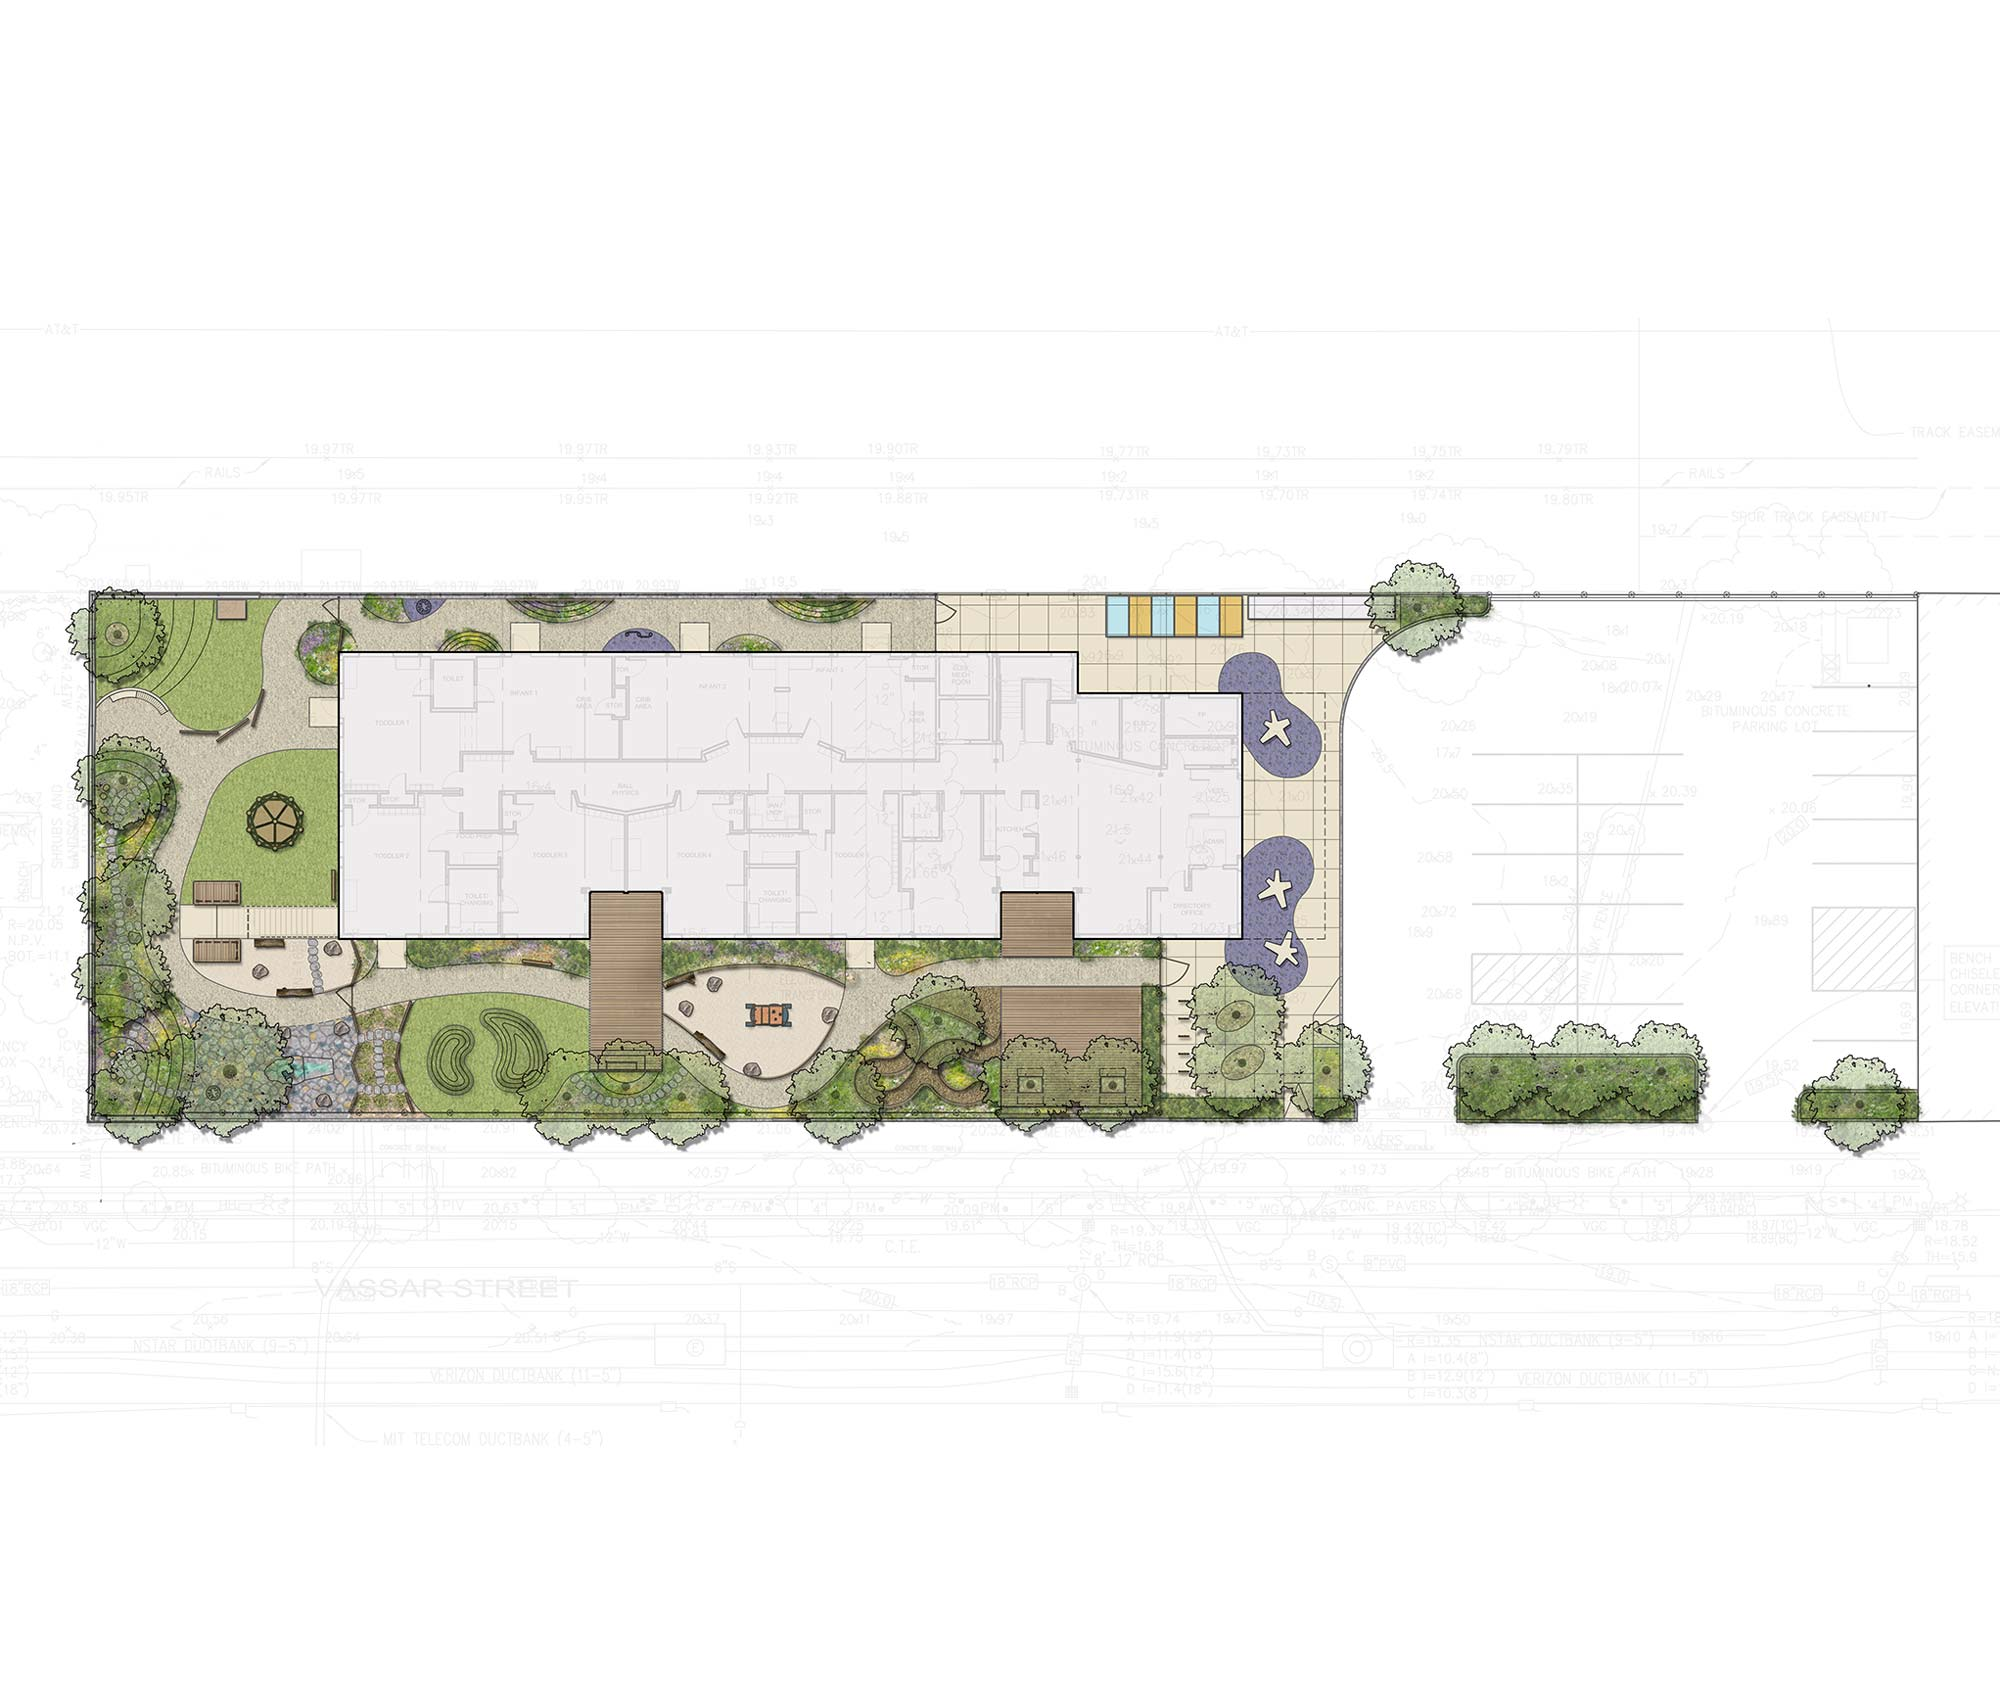 mit-childcare center_rendered landscape plan_Klopfer Martin.jpg